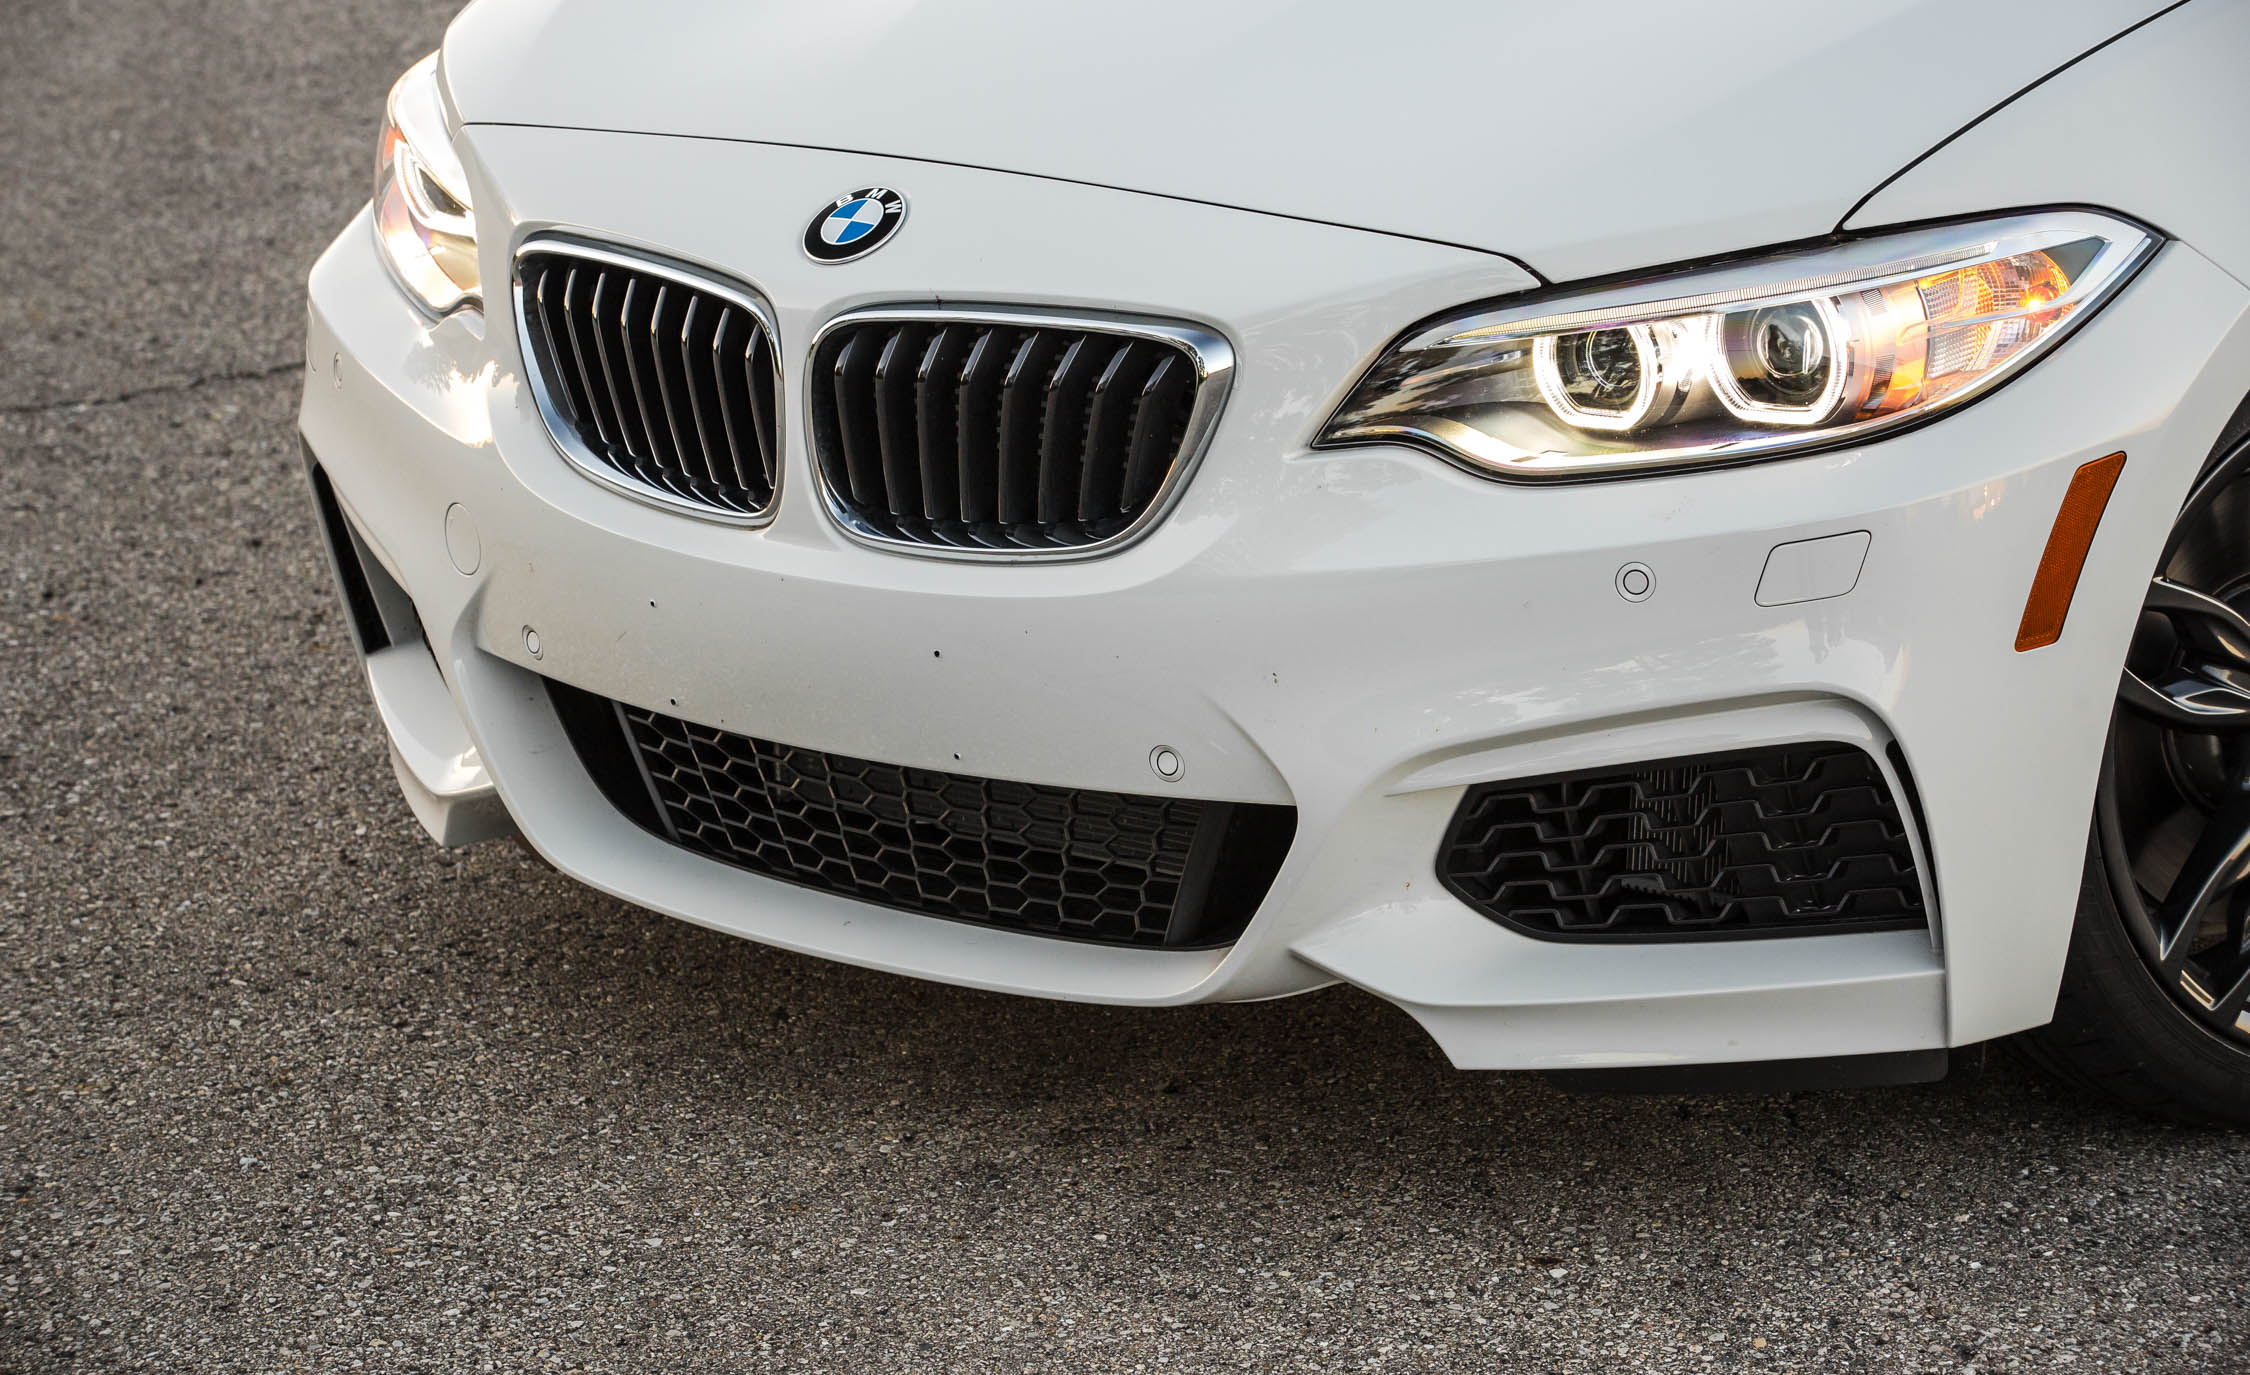 2017 BMW M240i Coupe Automatic Exterior View Front Bumper And Grille (View 32 of 36)